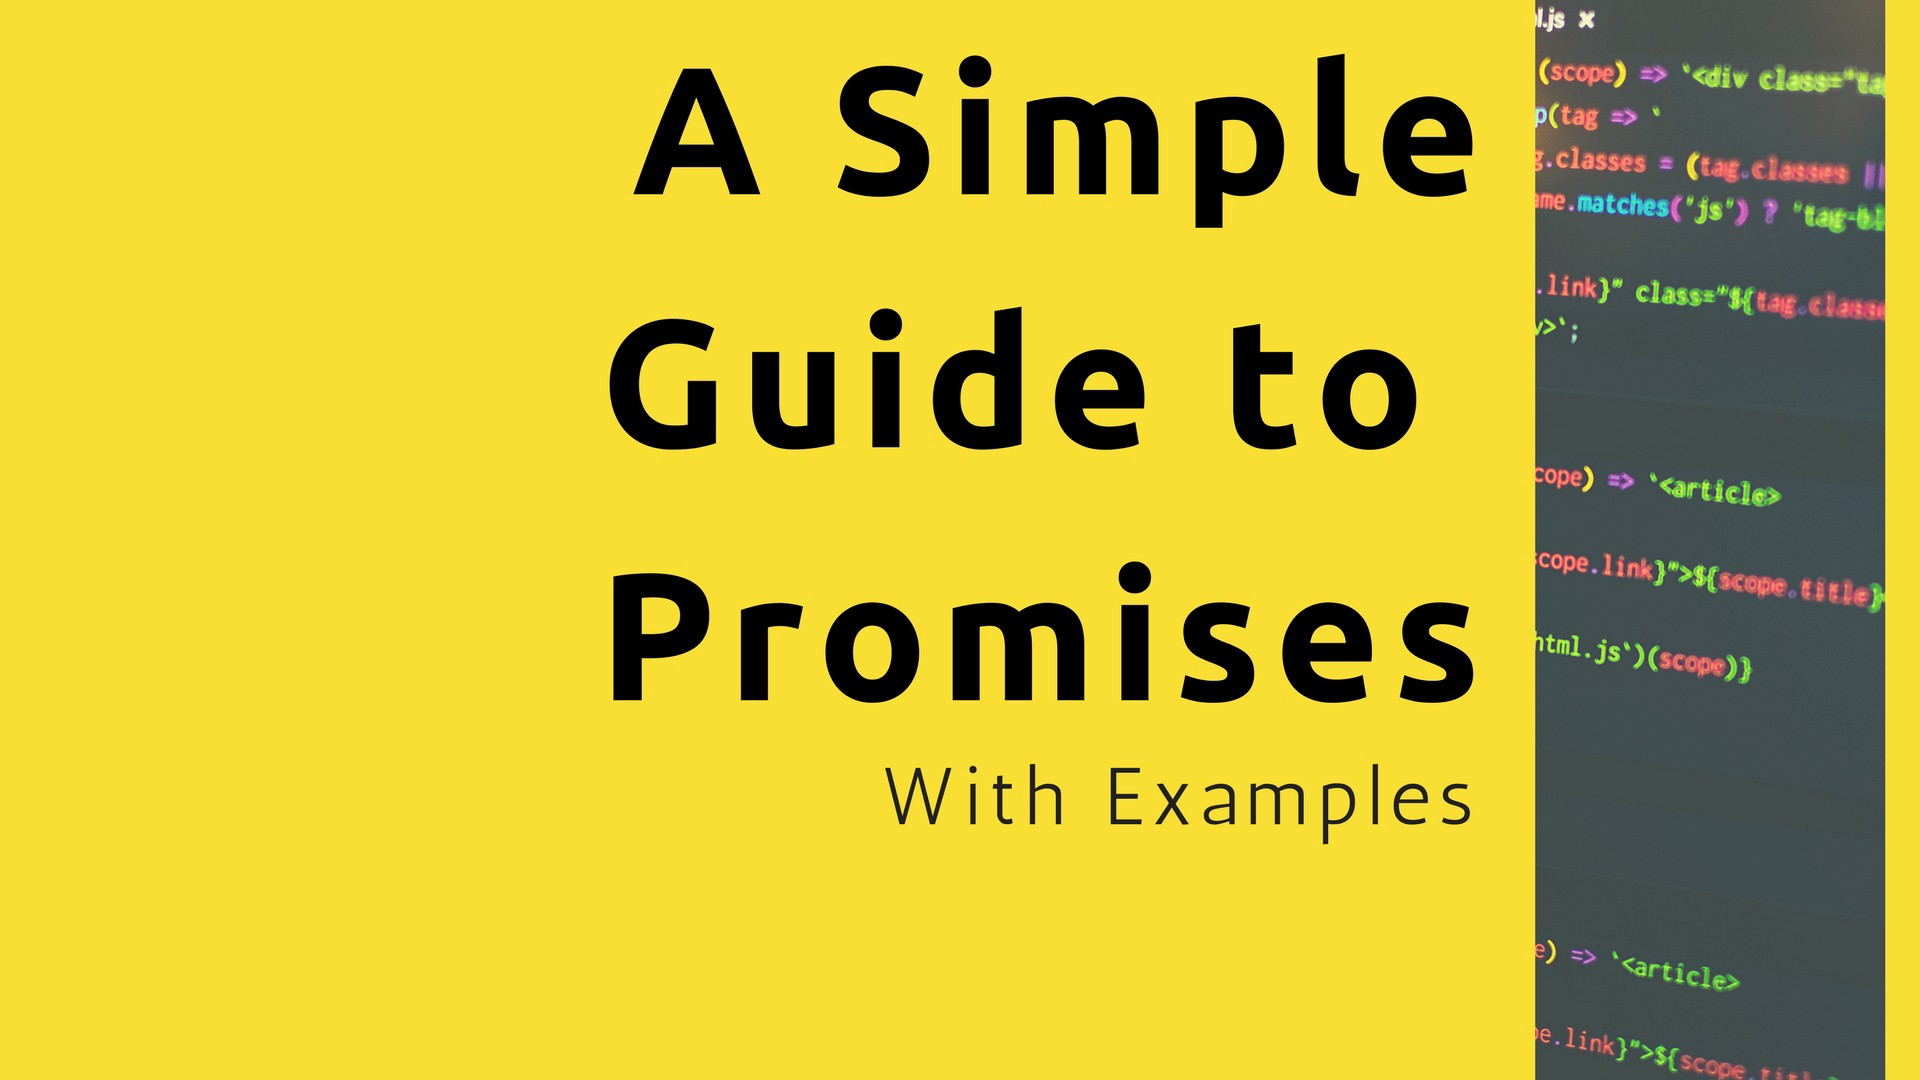 A Simple Guide to ES6 Promises - codeburst